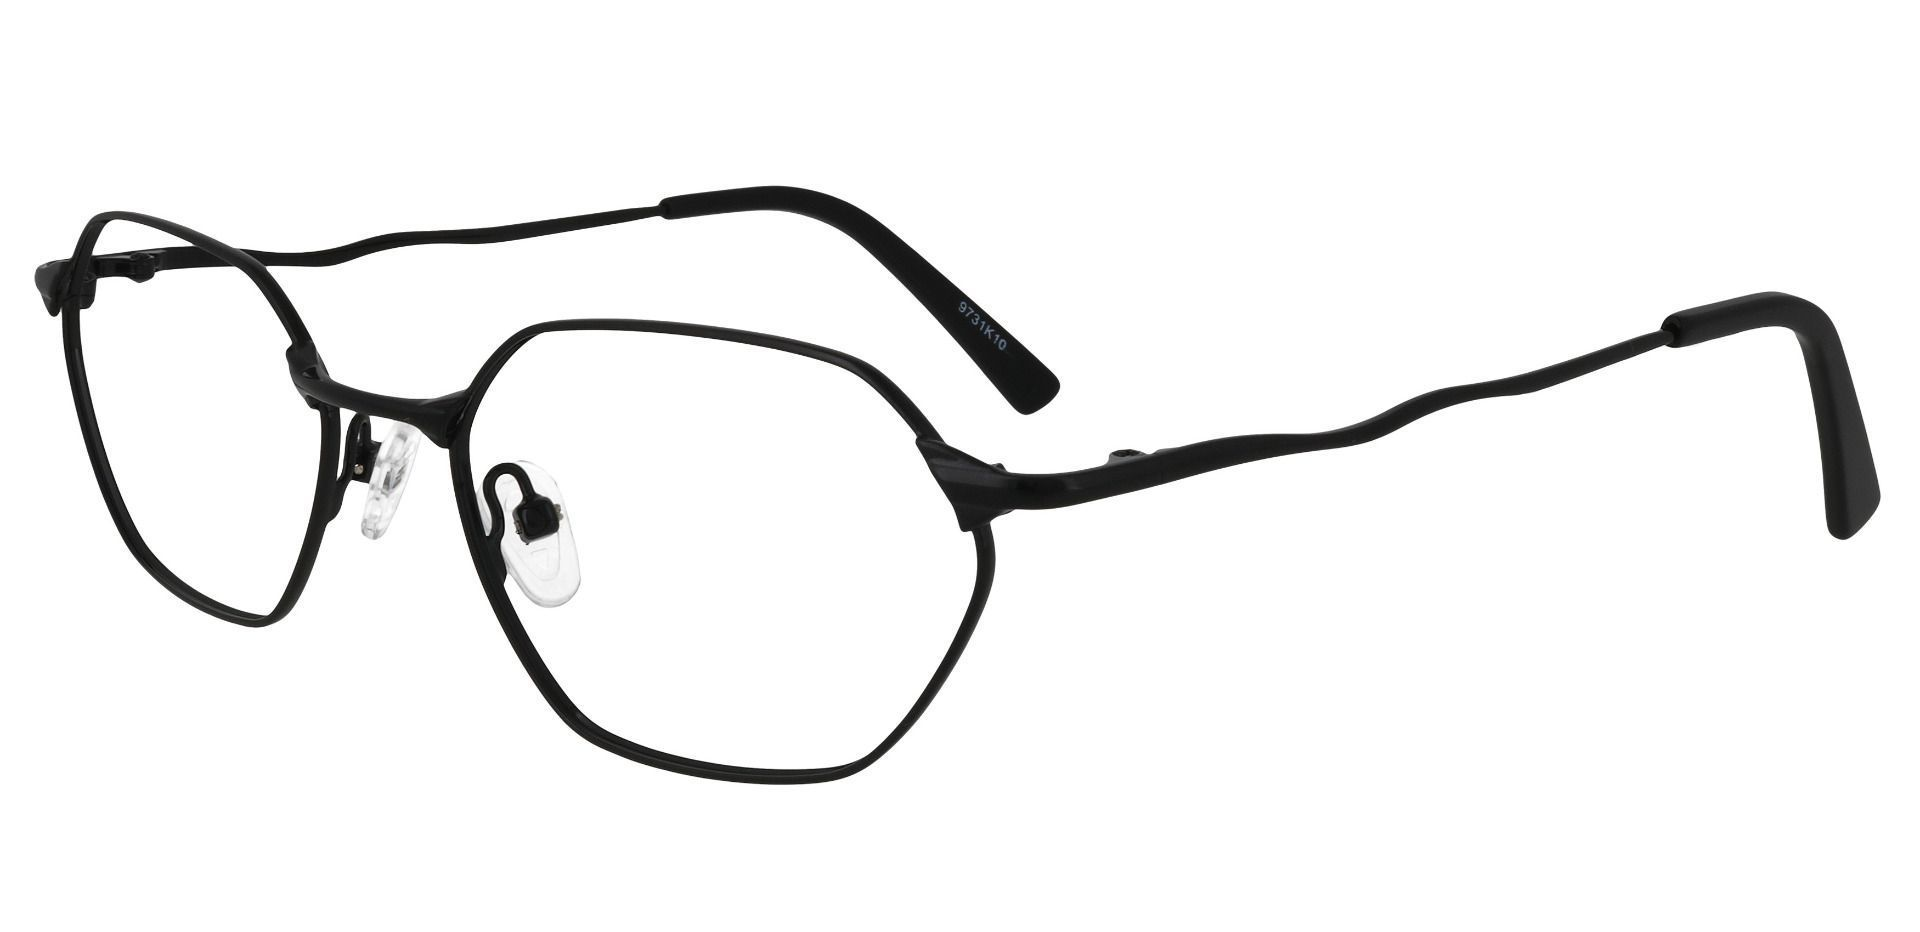 Auburn Geometric Prescription Glasses - Black